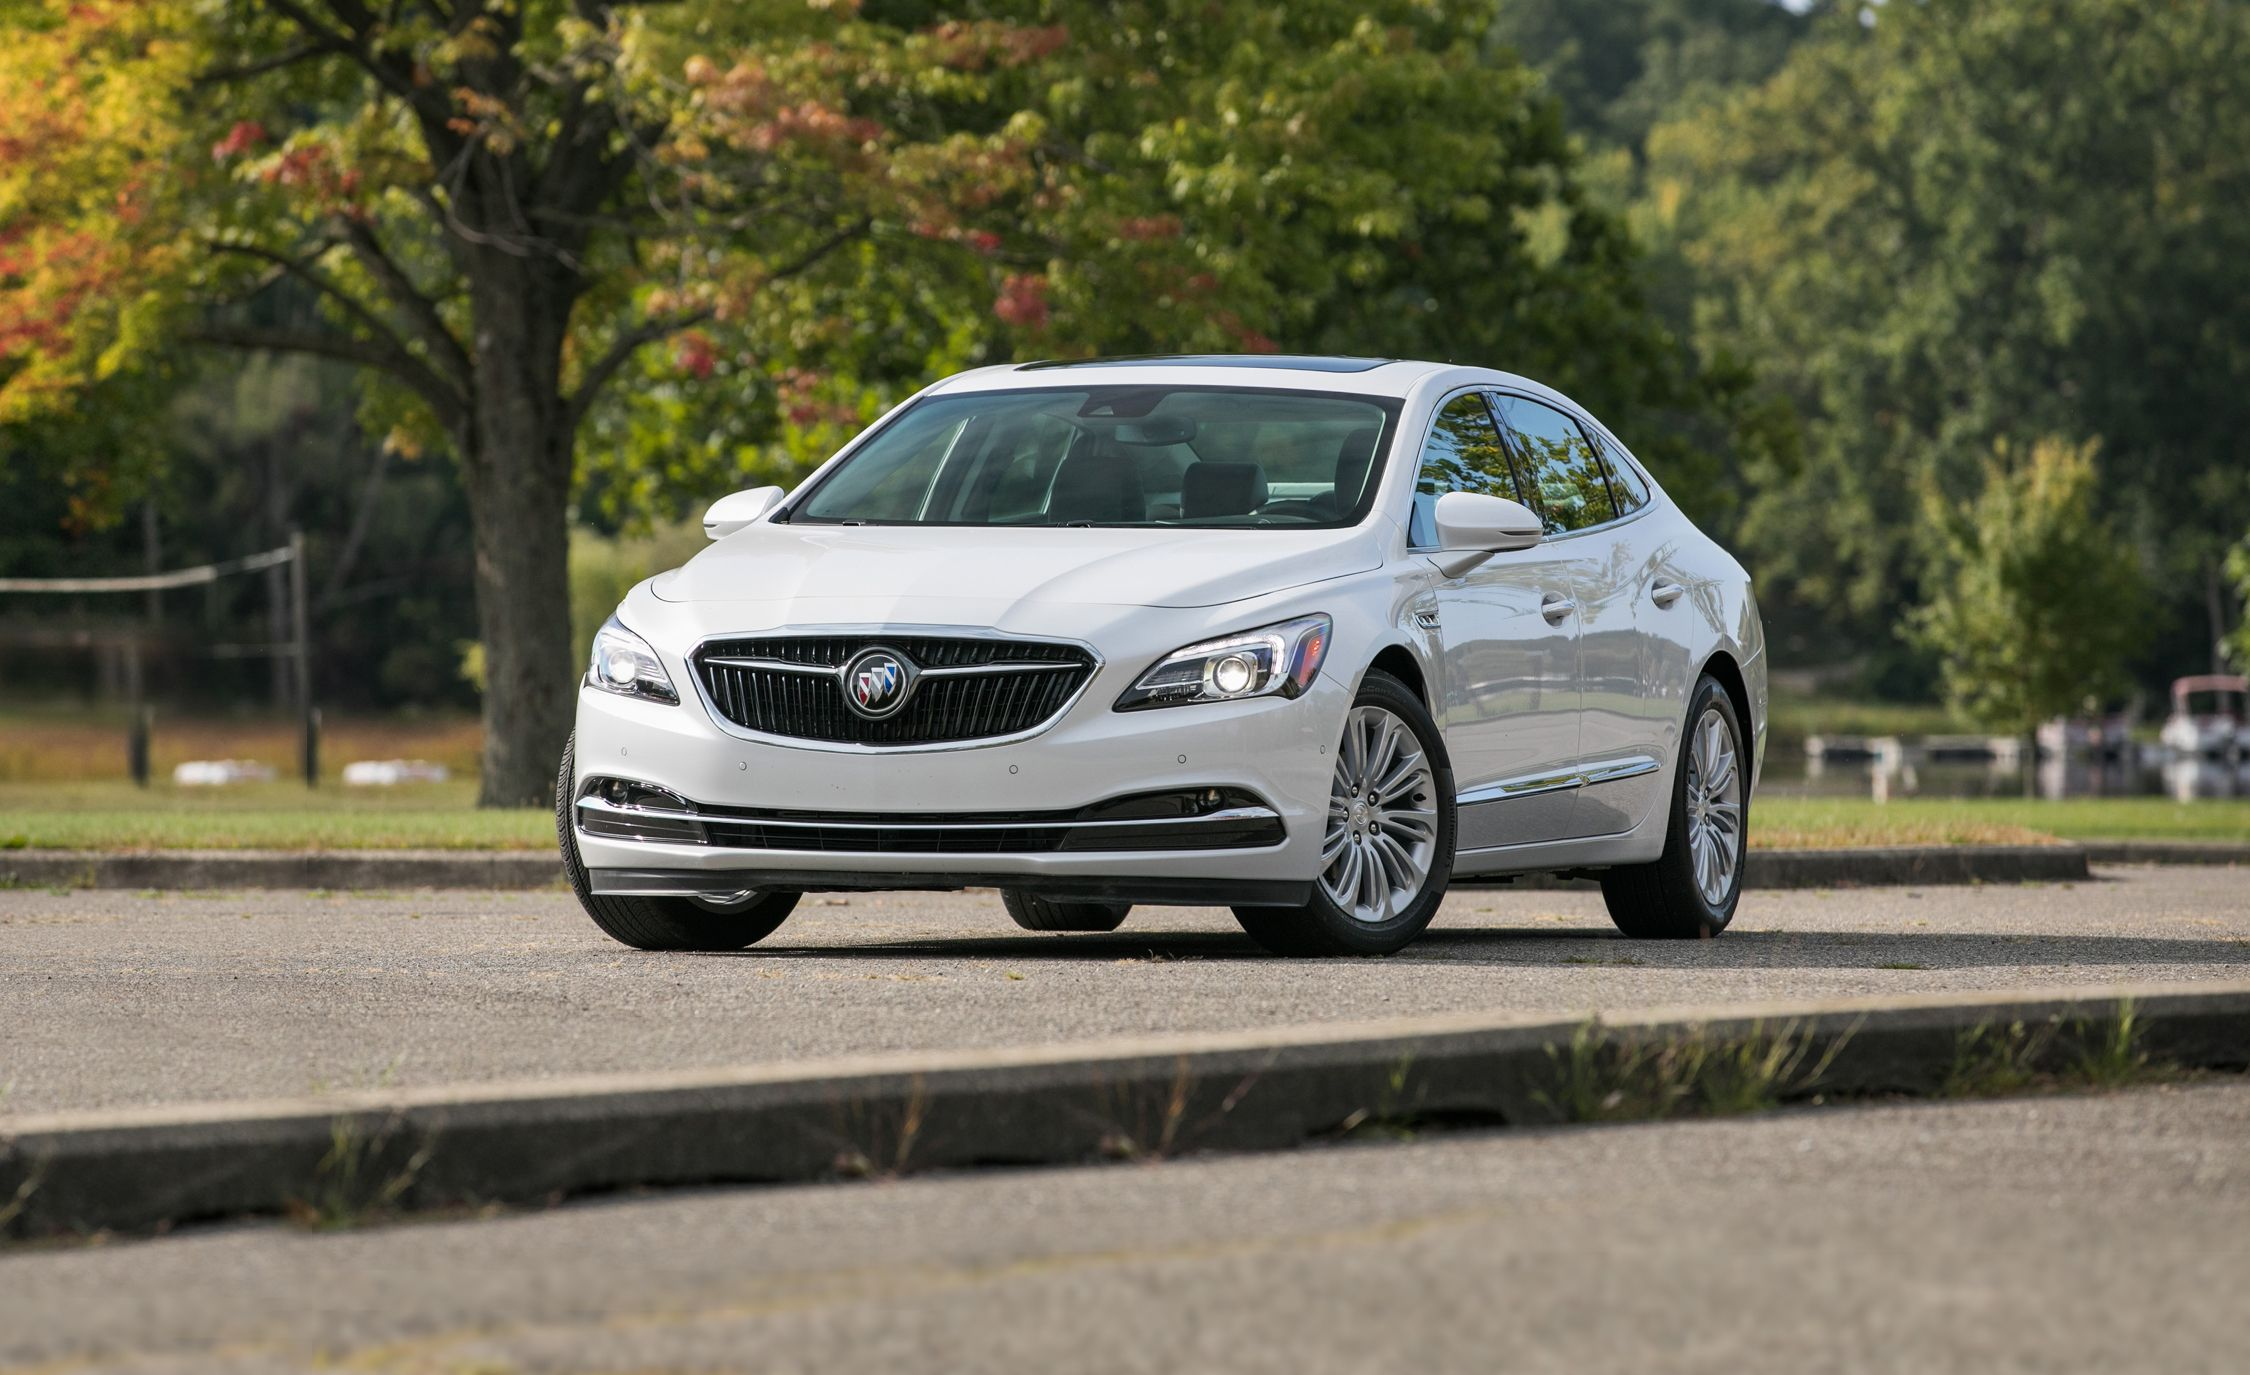 is lacrosse review reviews beautiful sedan big buick